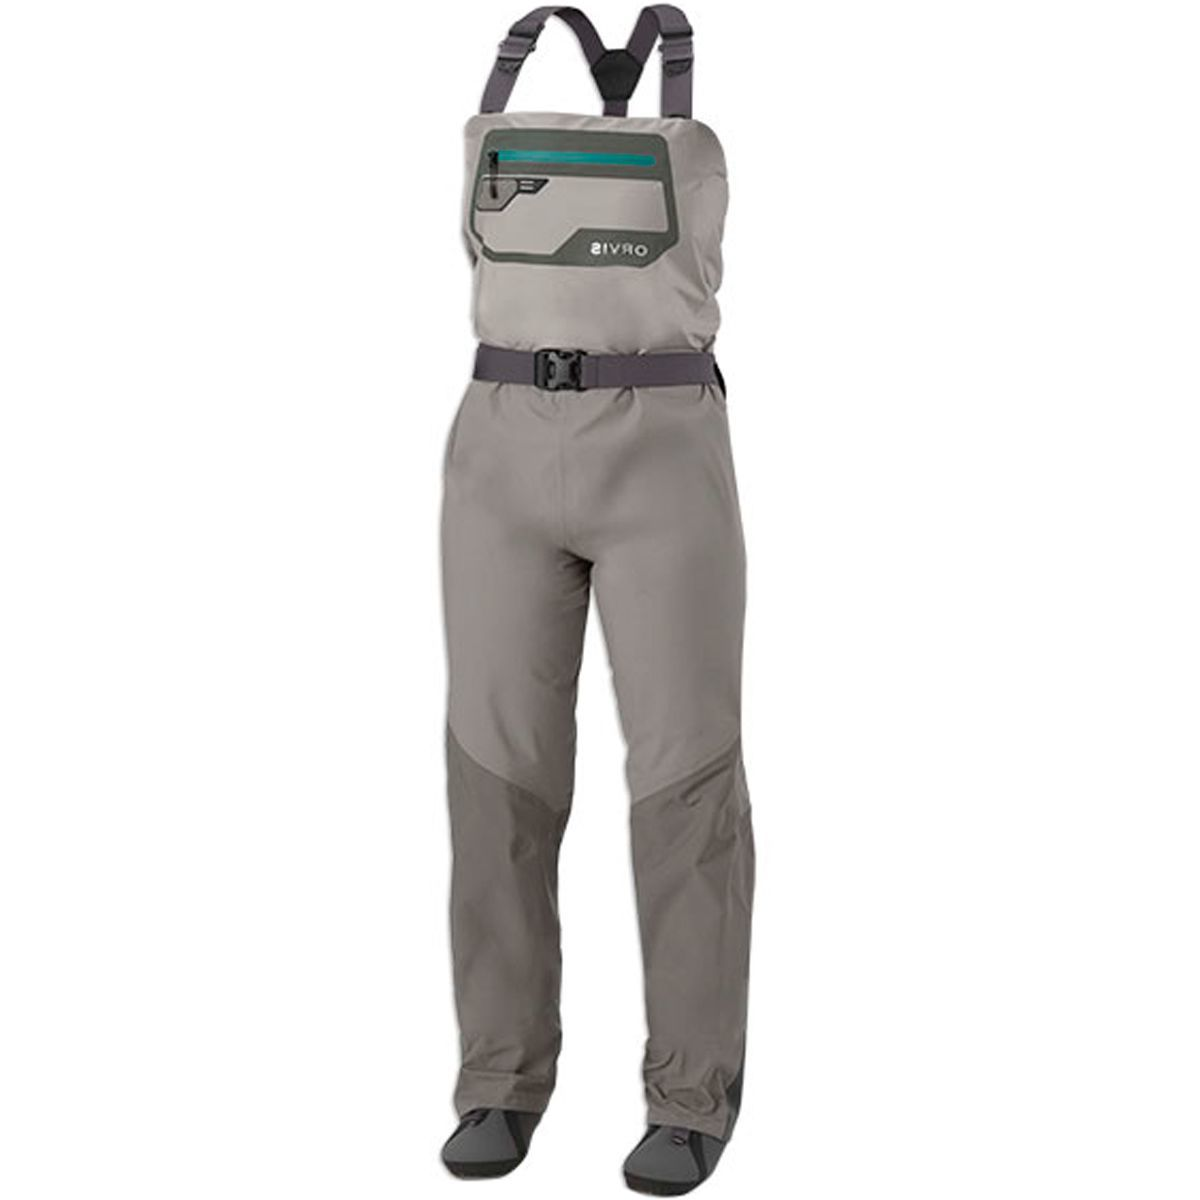 Orvis Ultralight Convertible Wader - Women's